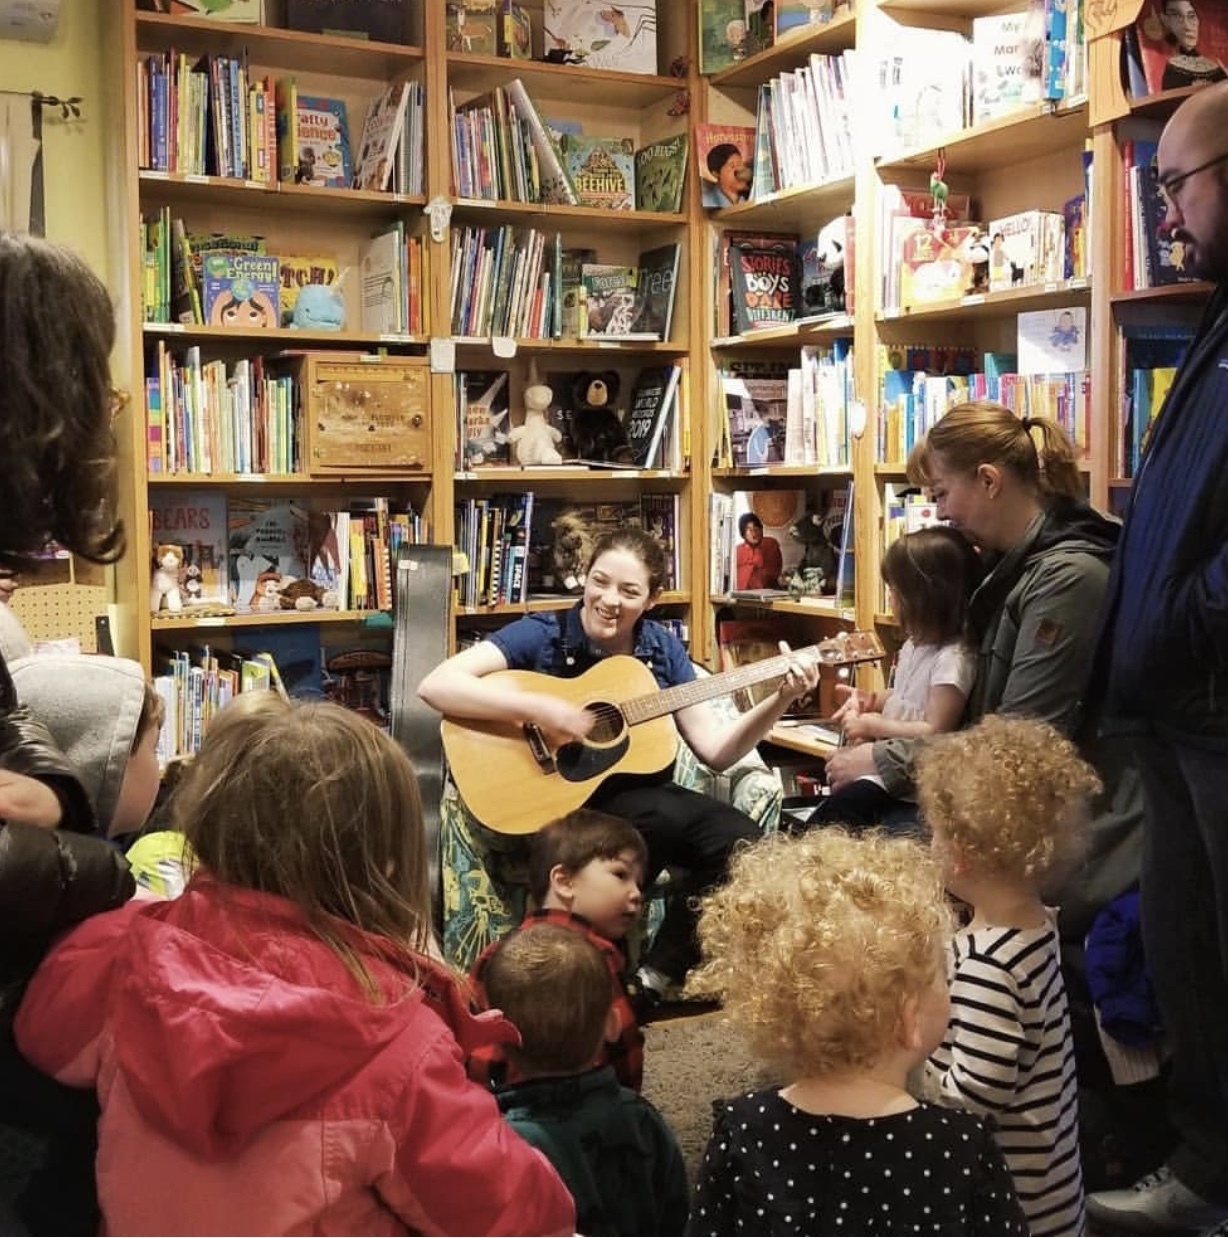 Sarah Jones hosting a story time with books and music at  Green Bean Books  in Portland, Oregon, in January 2019.